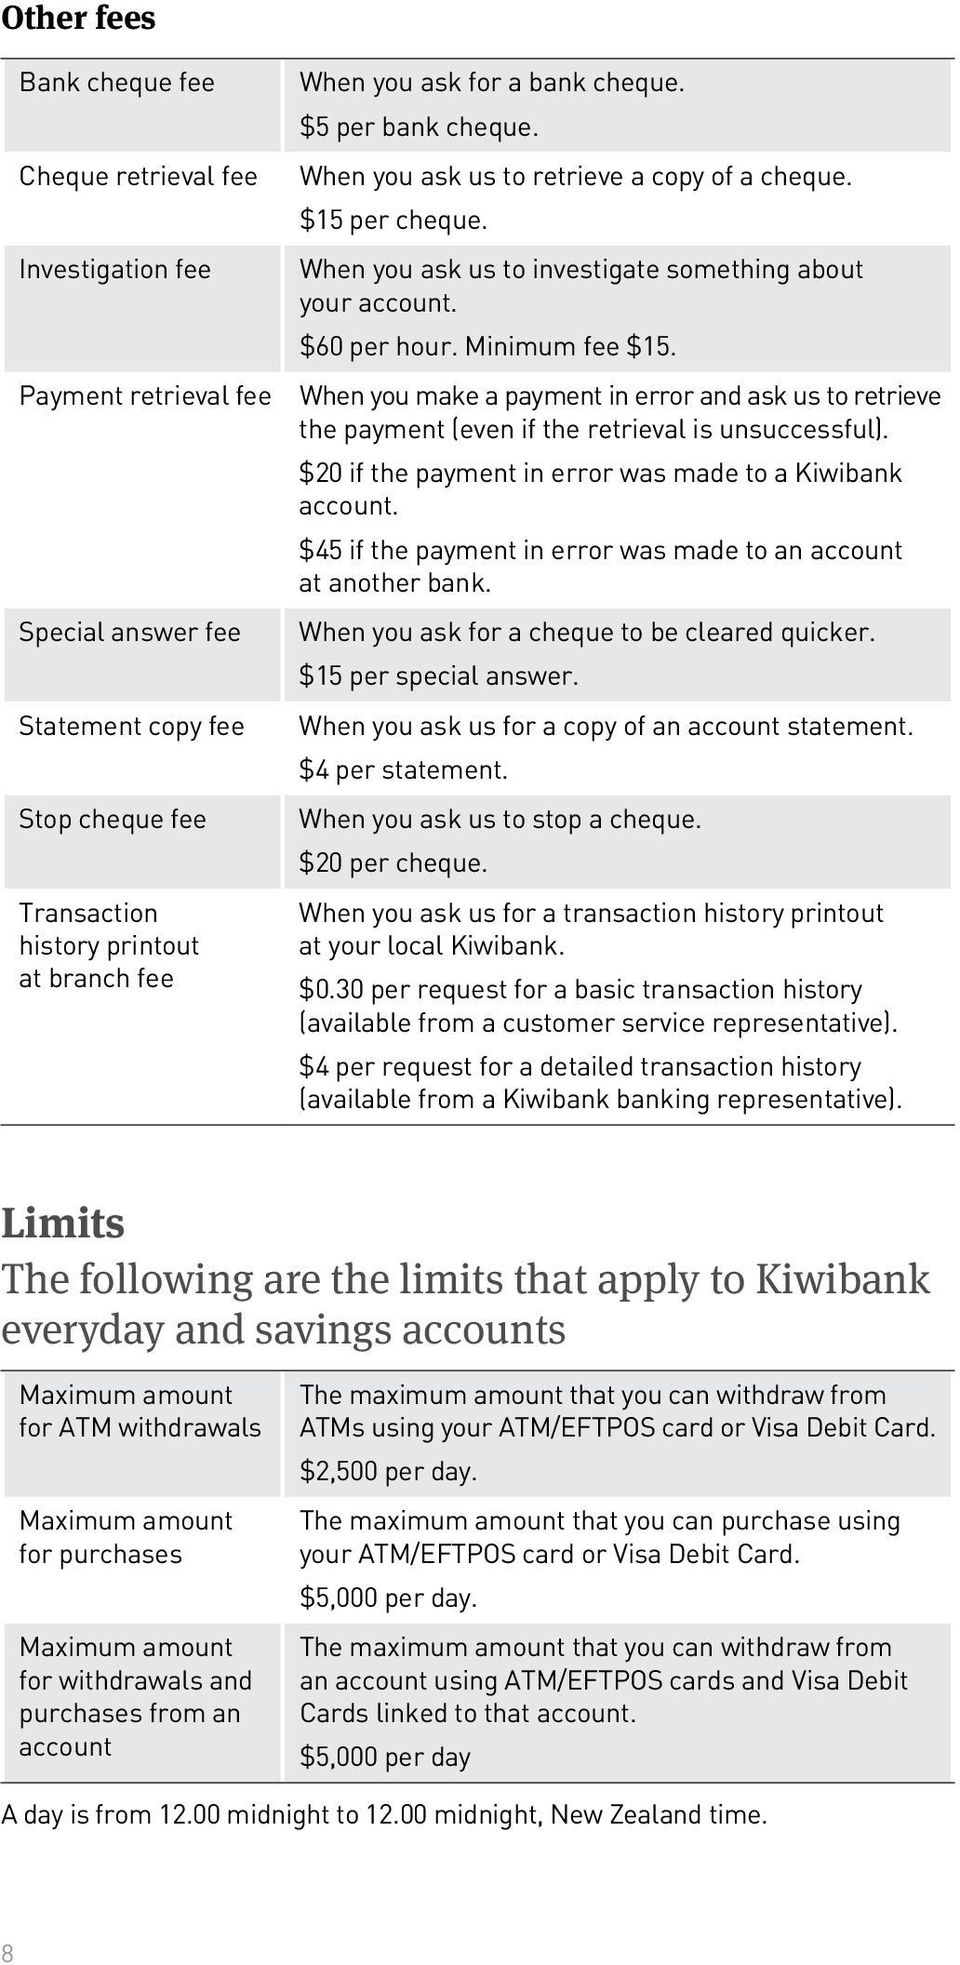 When you make a payment in error and ask us to retrieve the payment (even if the retrieval is unsuccessful). $20 if the payment in error was made to a Kiwibank account.